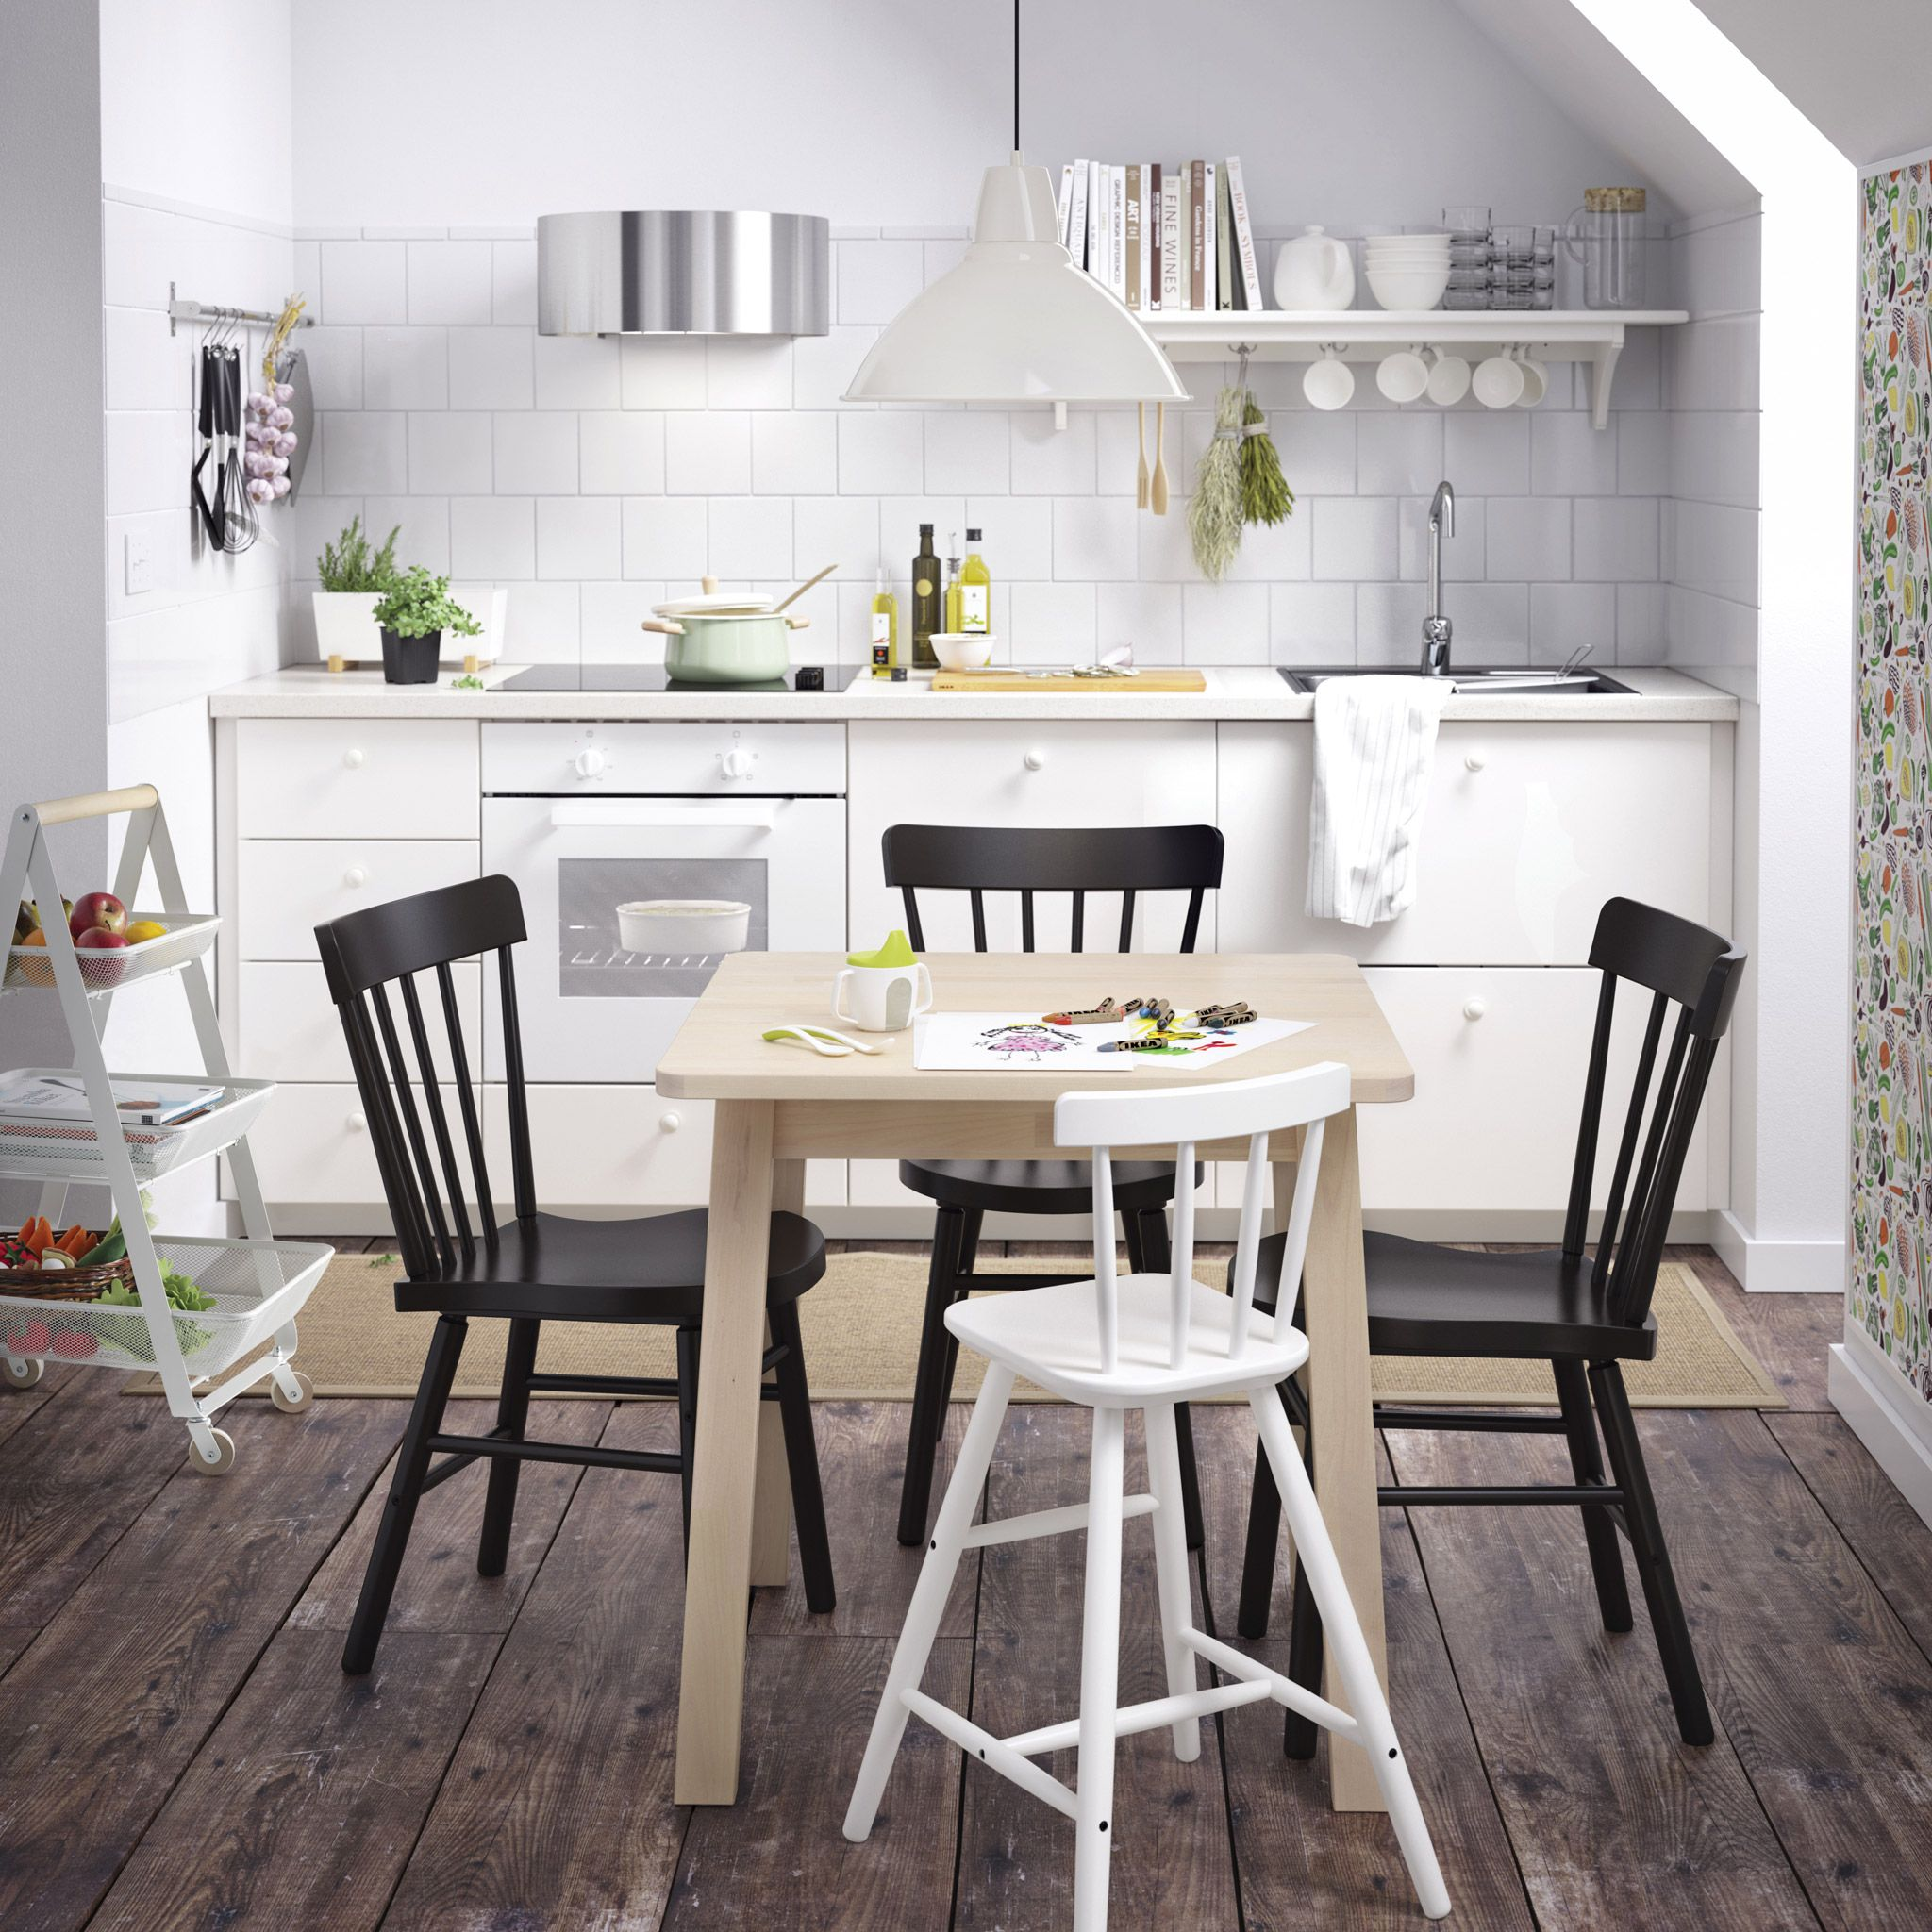 Related image Dining table in kitchen, Ikea dining